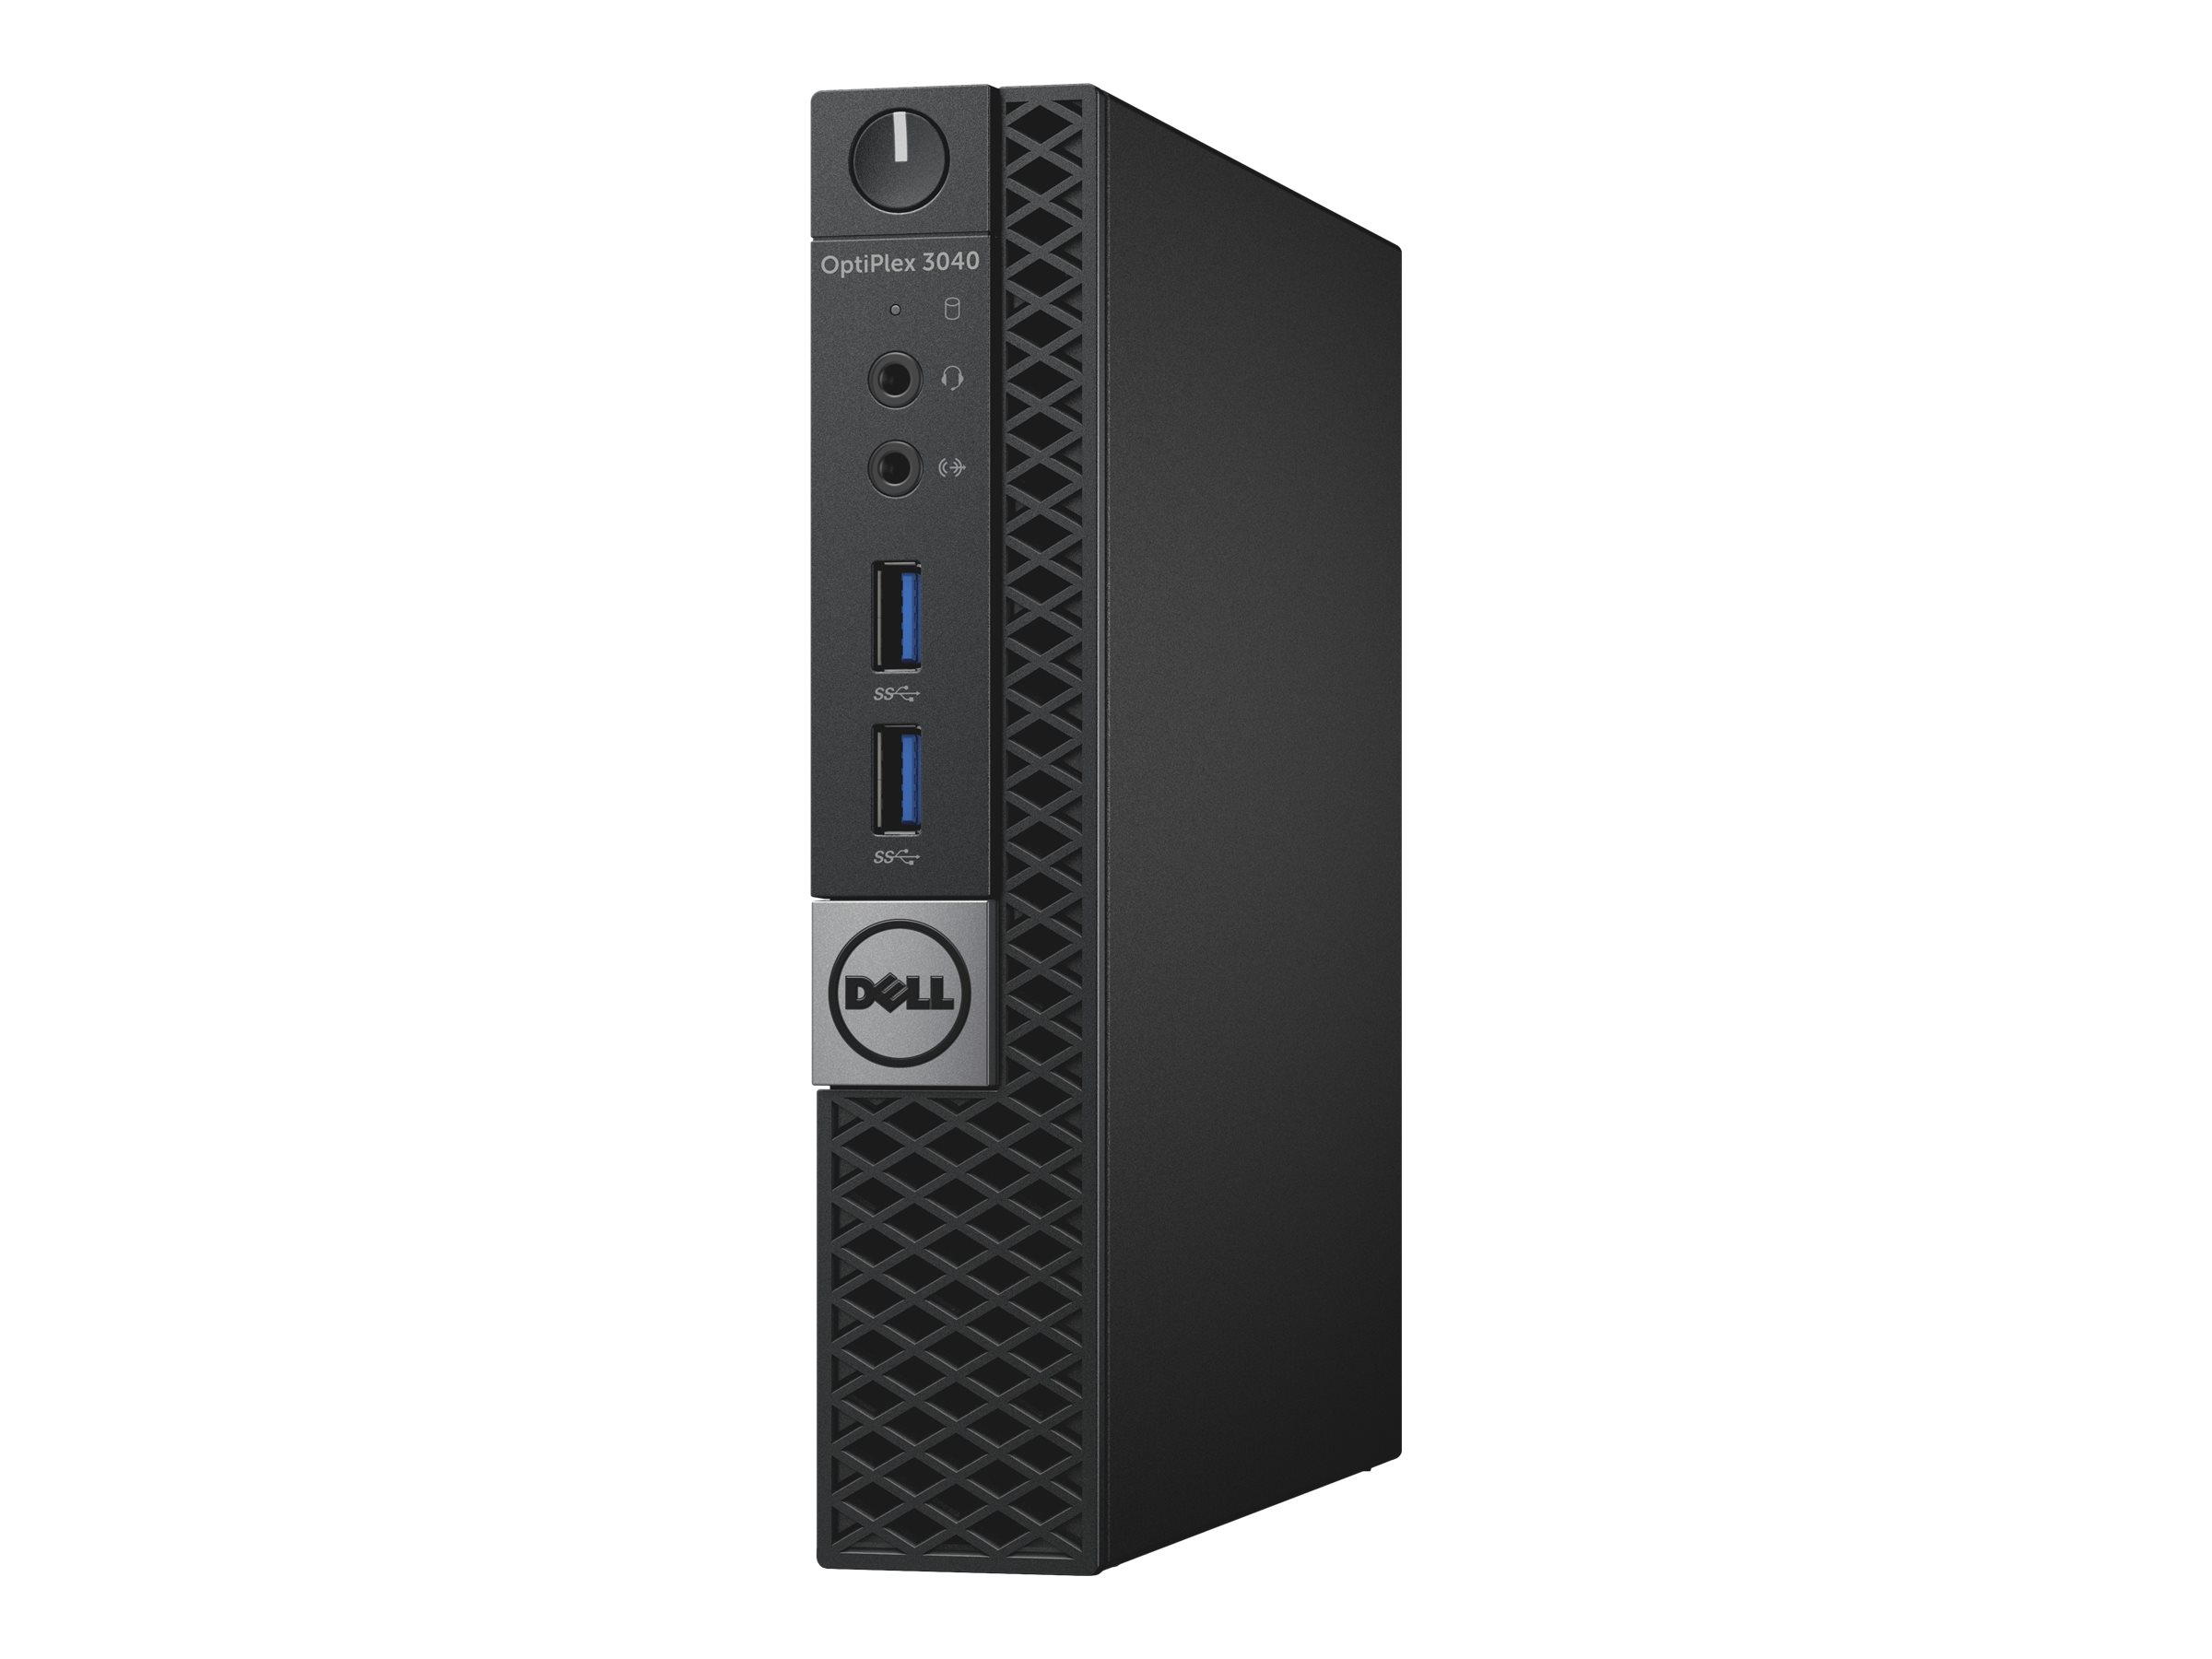 Dell OptiPlex 3040 - Micro - 1 x Core i5 6500T / 2.5 GHz - RAM 4 GB - HDD 500 GB - HD Graphics 530